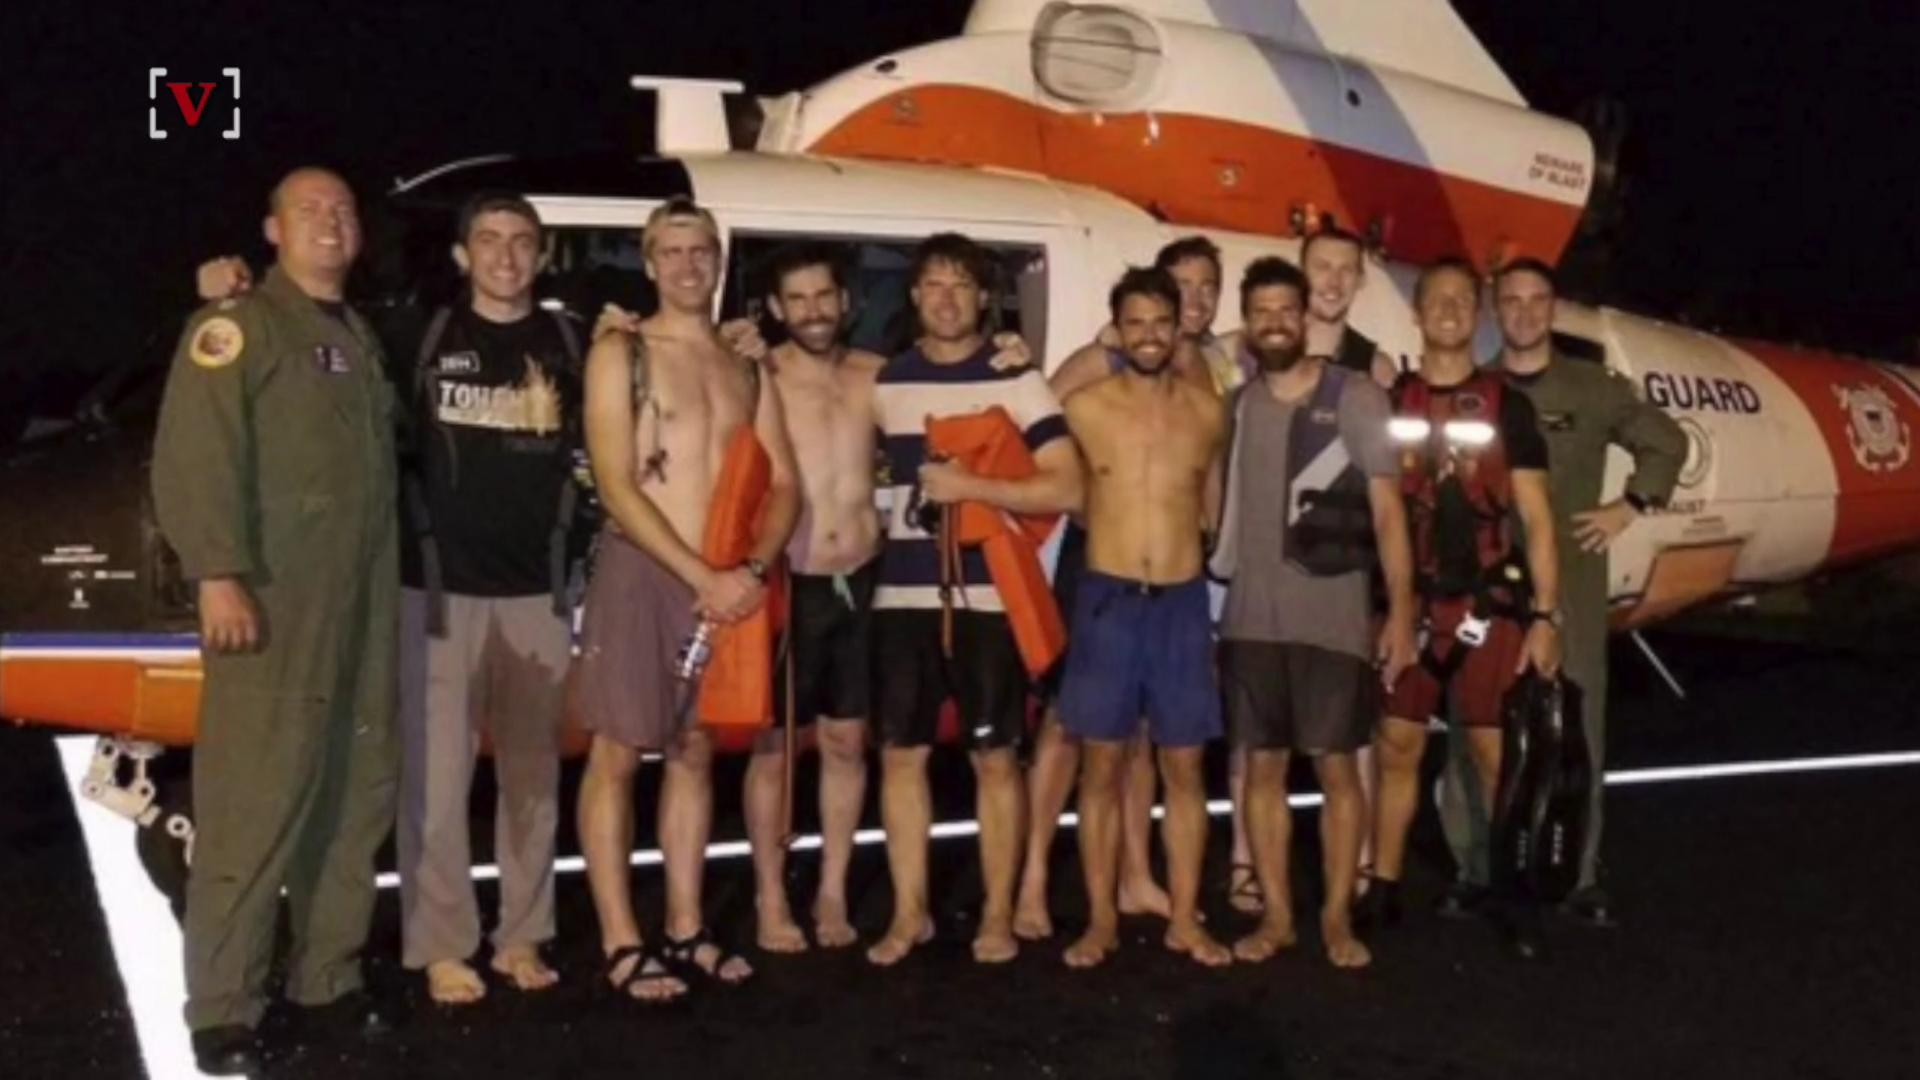 Bachelor Party Gone Wrong With the U.S. Coast Guard Coming to the Rescue